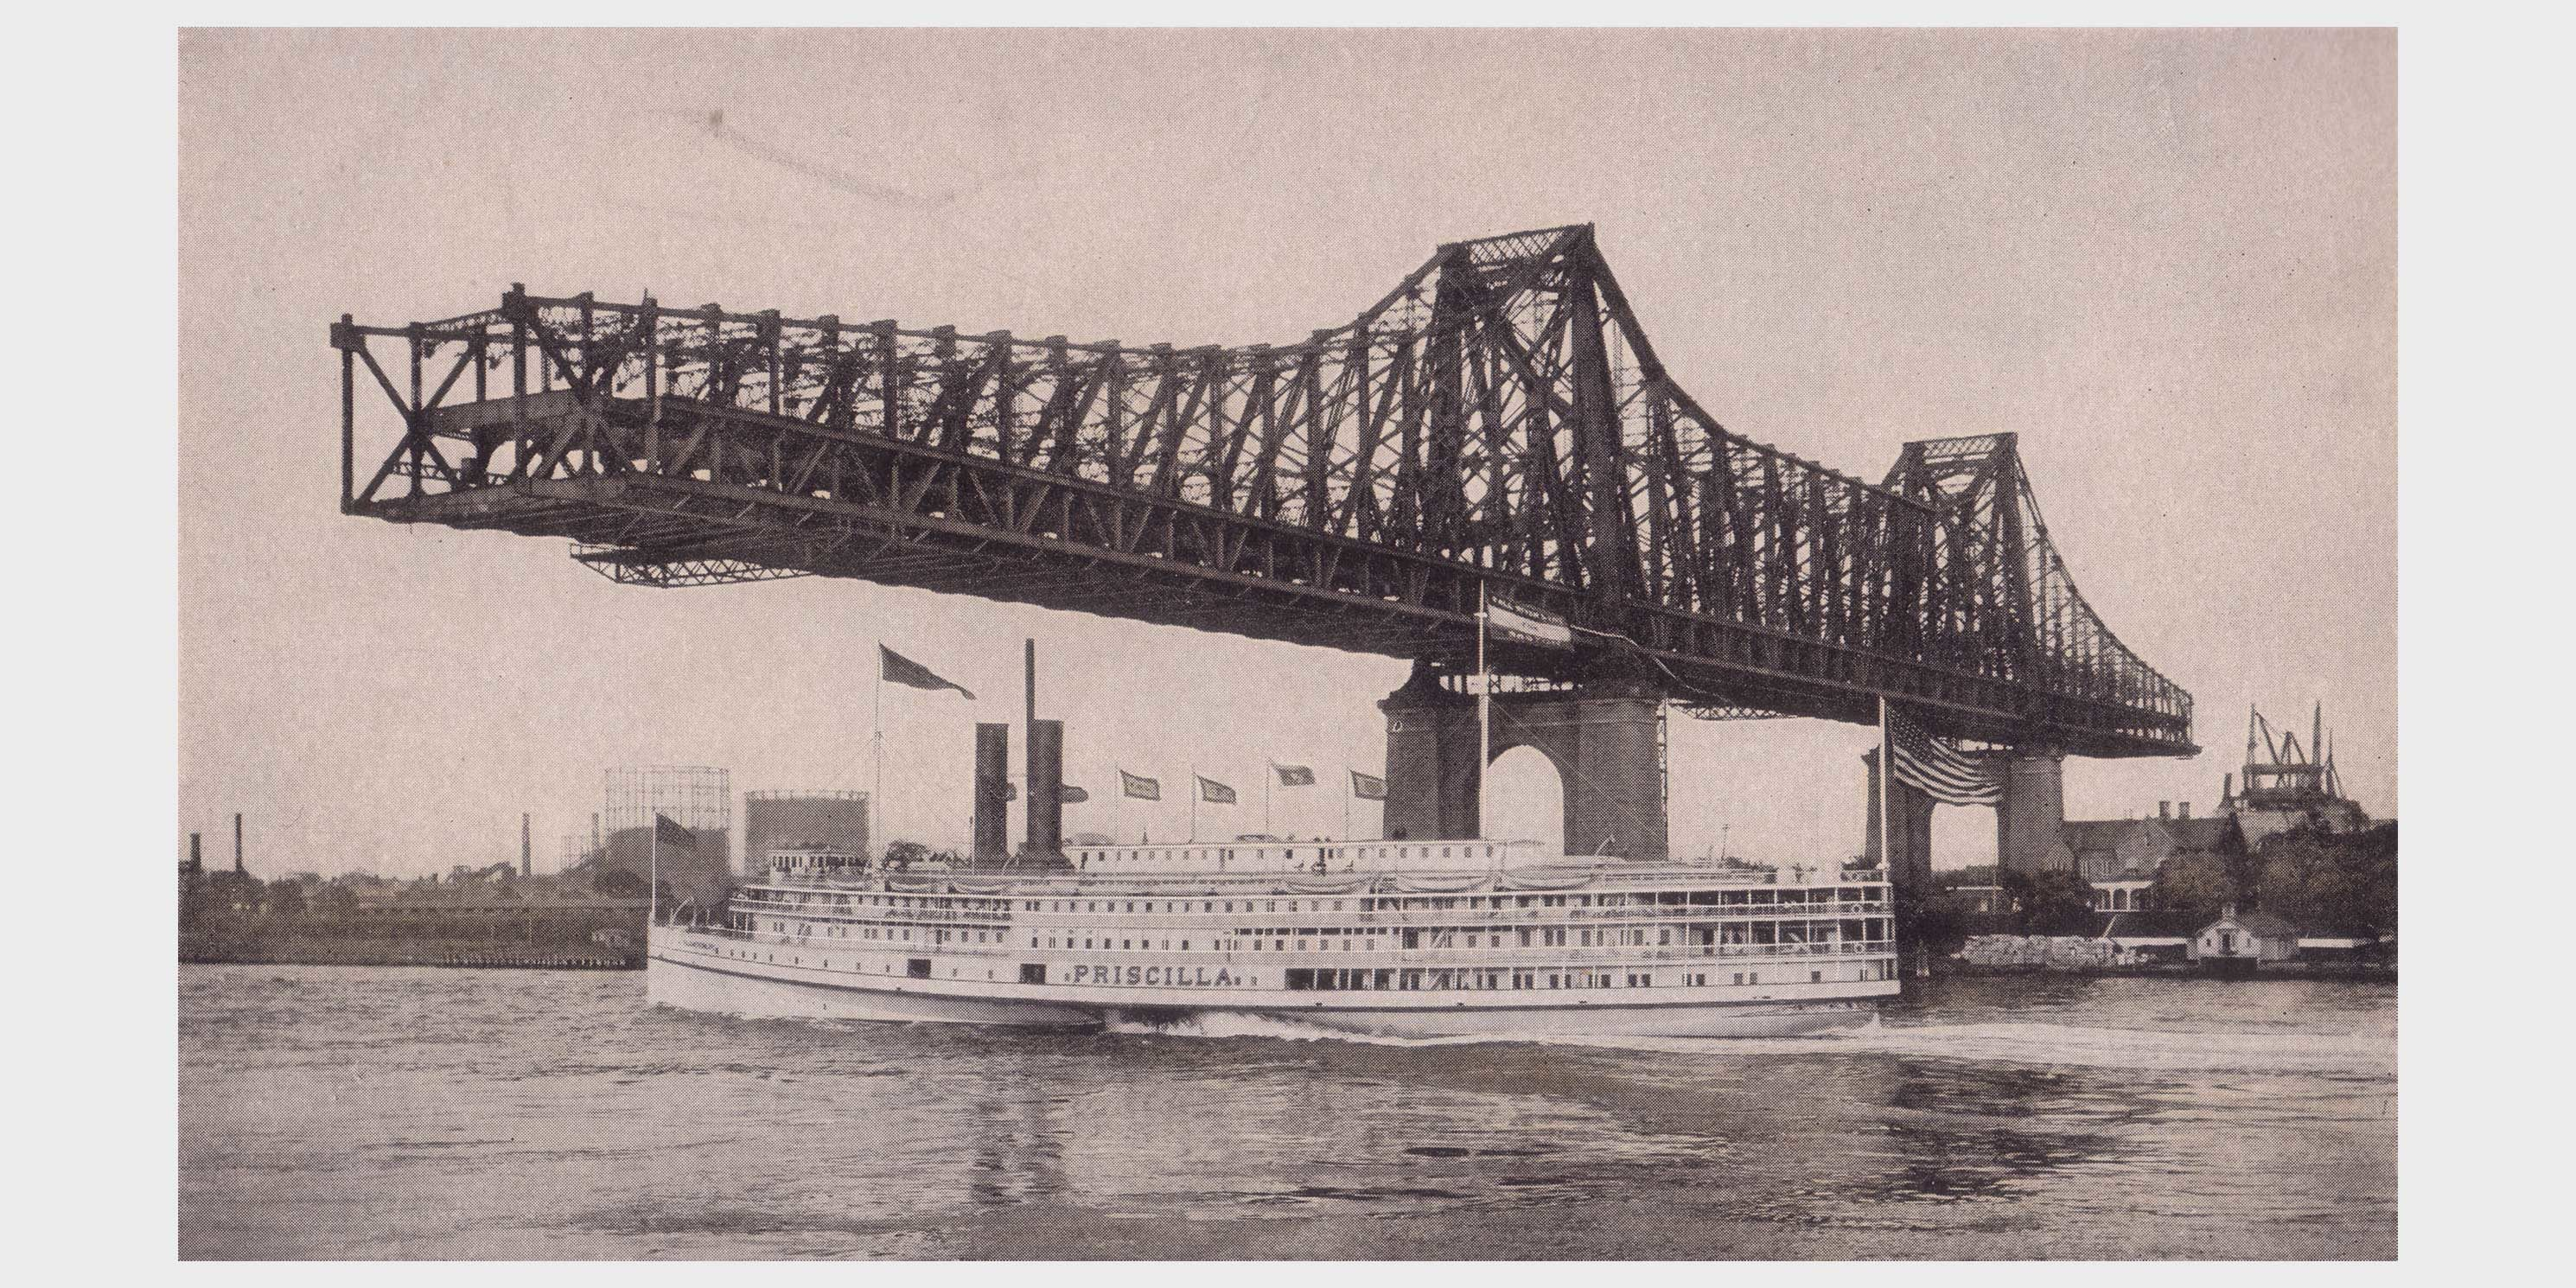 partially completed Queensborough Bridge with ferry passing under it